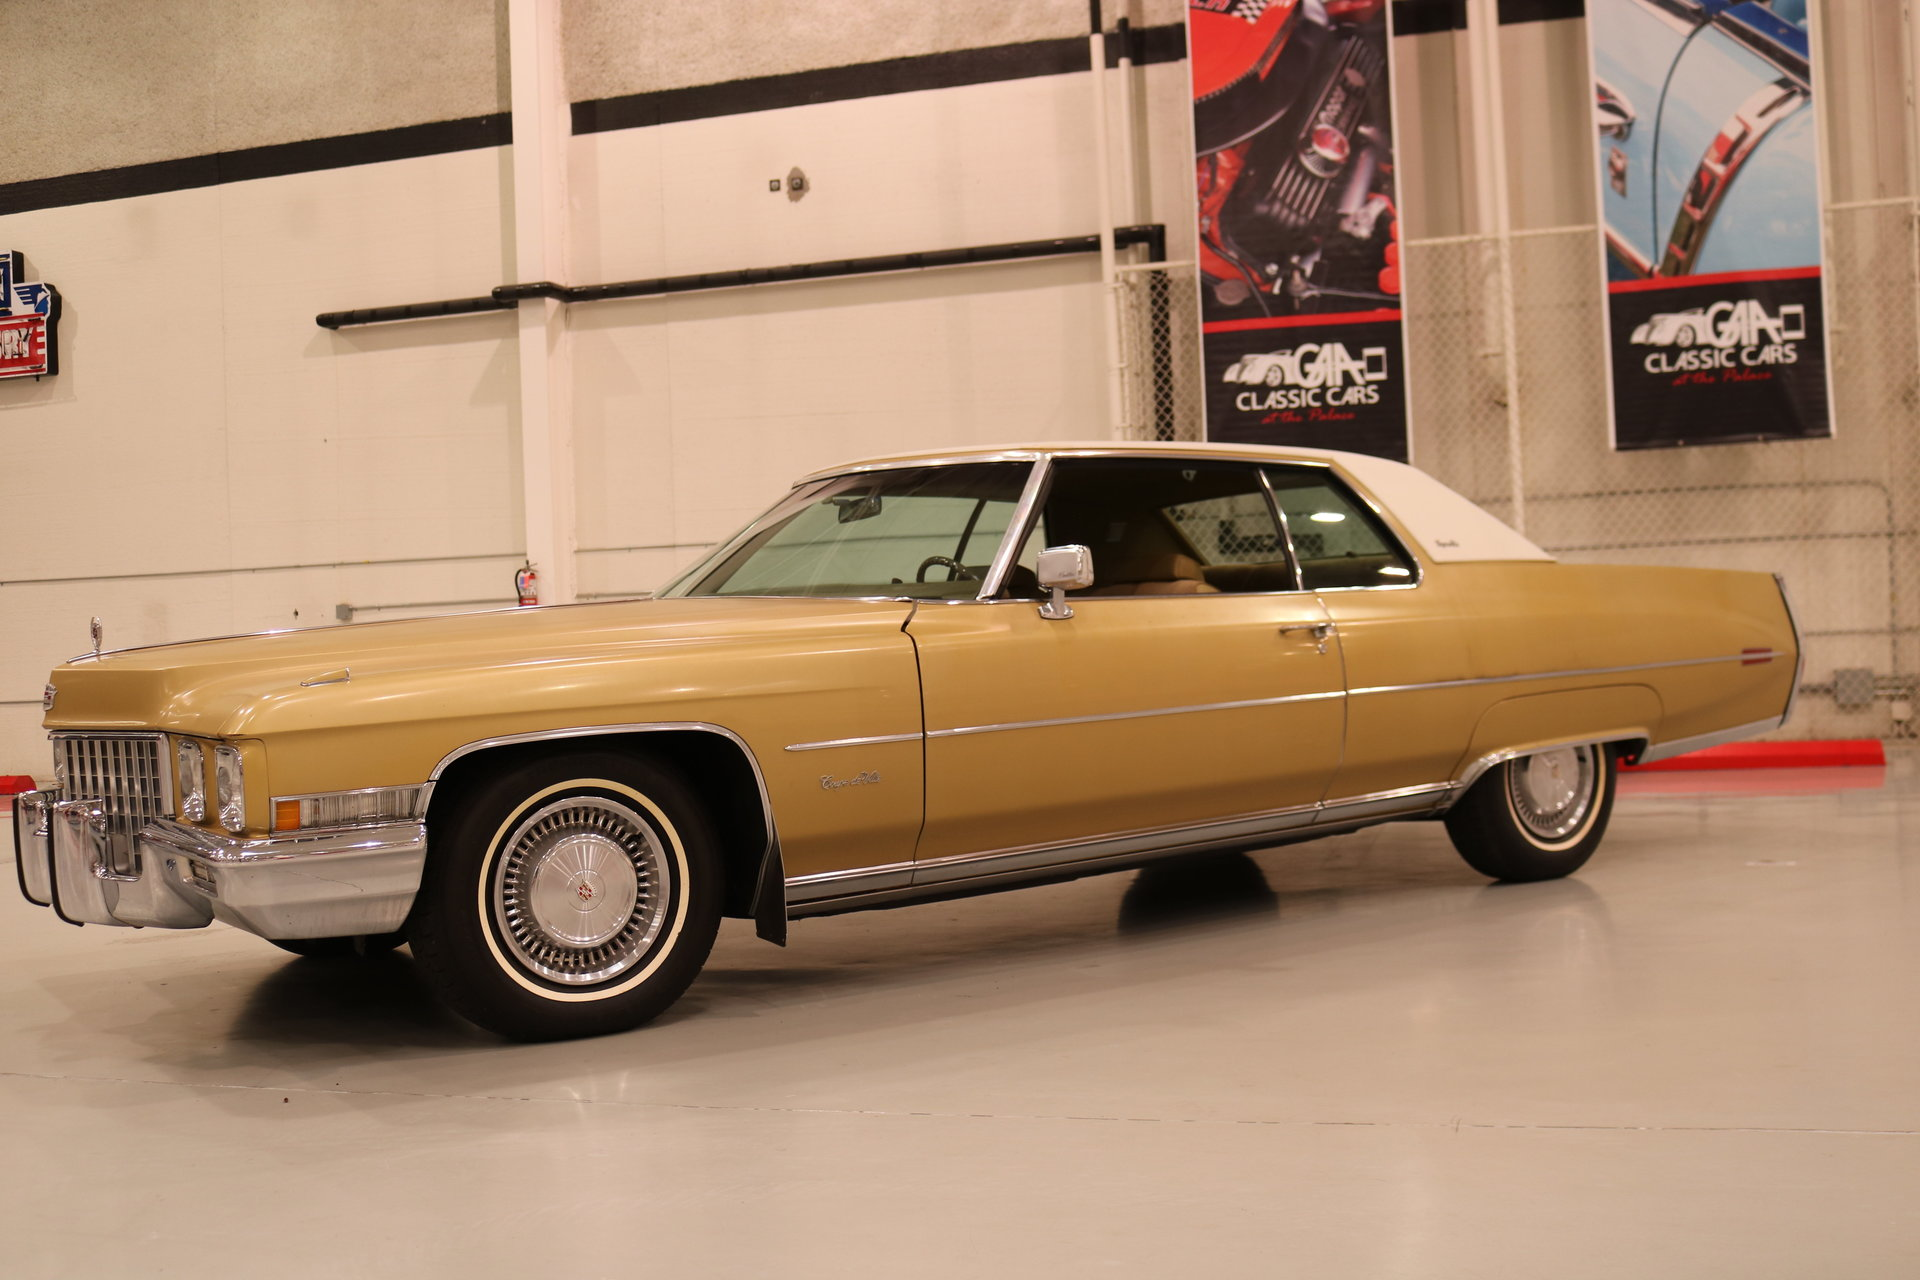 1971 Cadillac Coupe DeVille | GAA Classic Cars